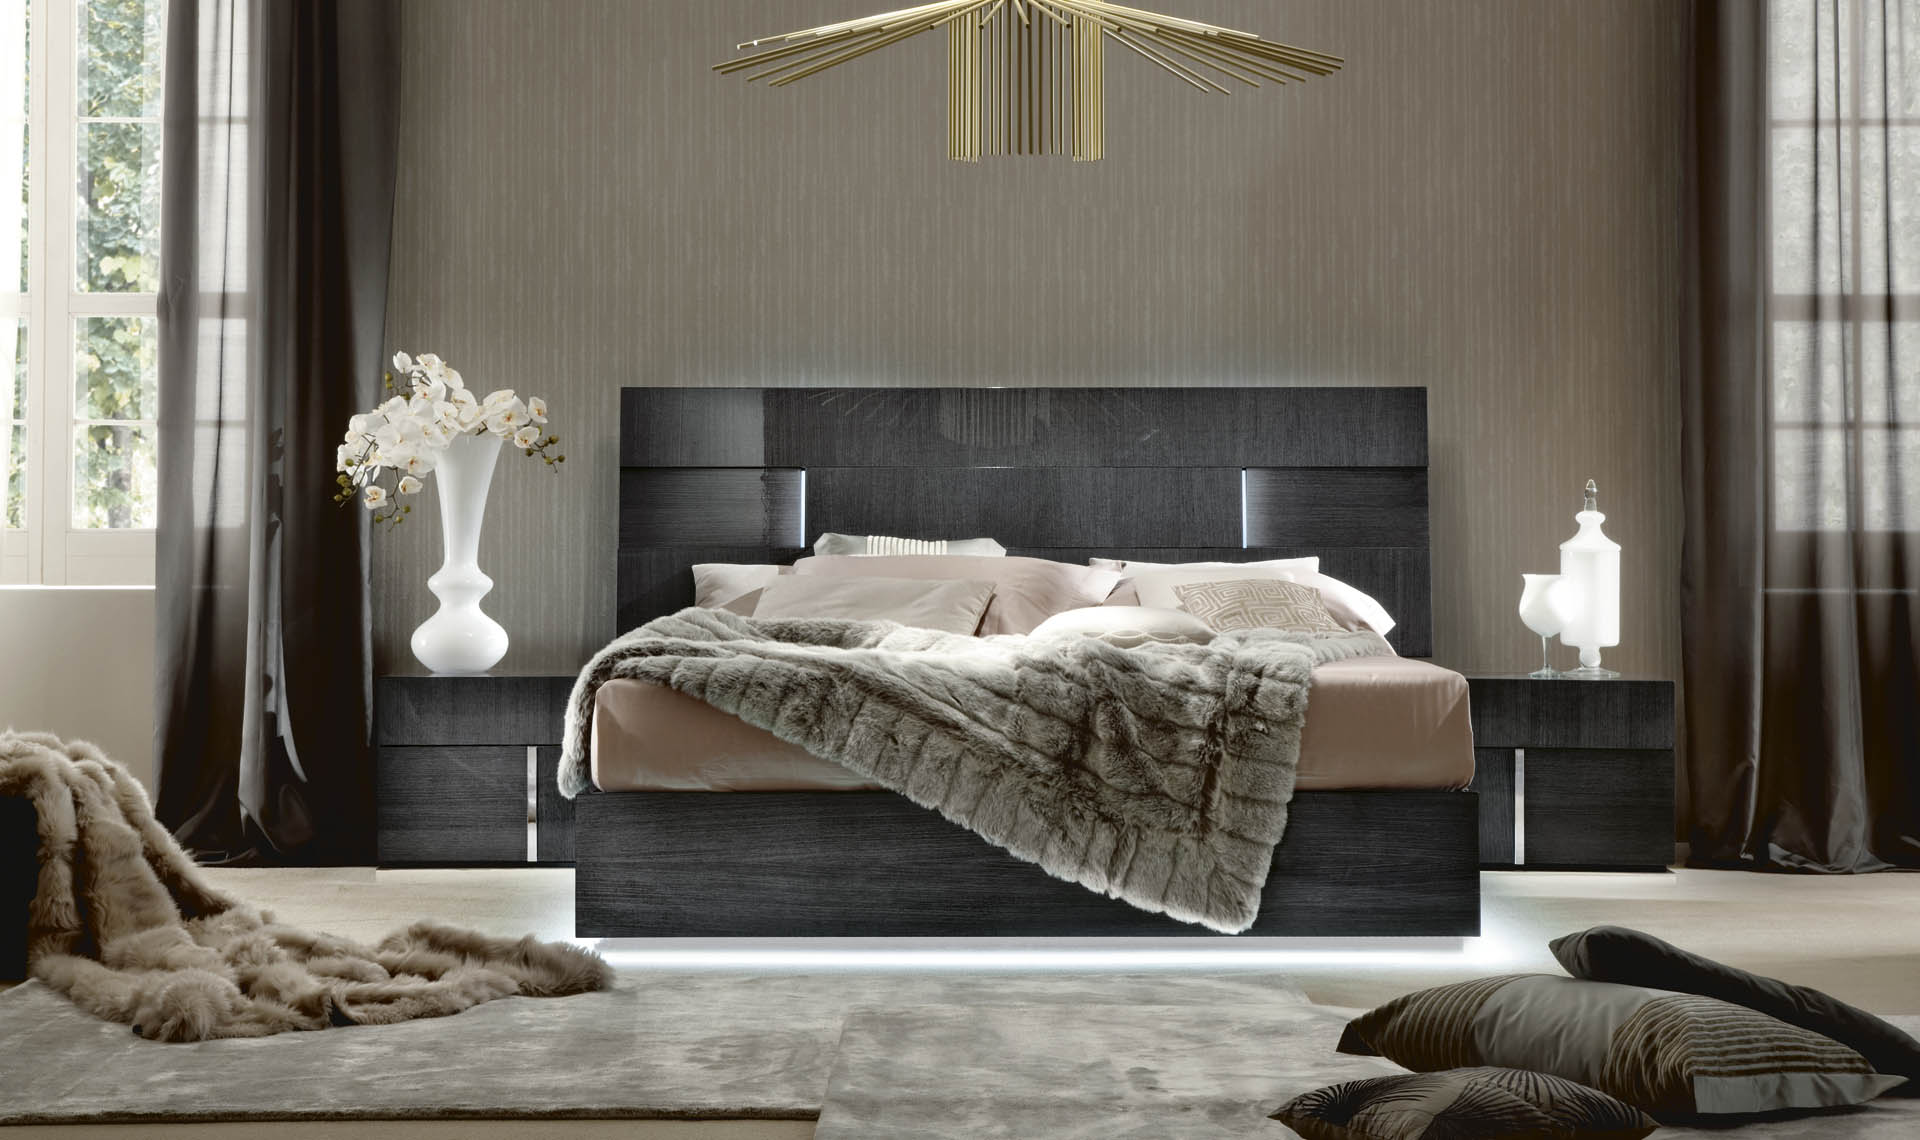 Alf Monte Carlo Bedroom Collection High Gloss Koto Finish